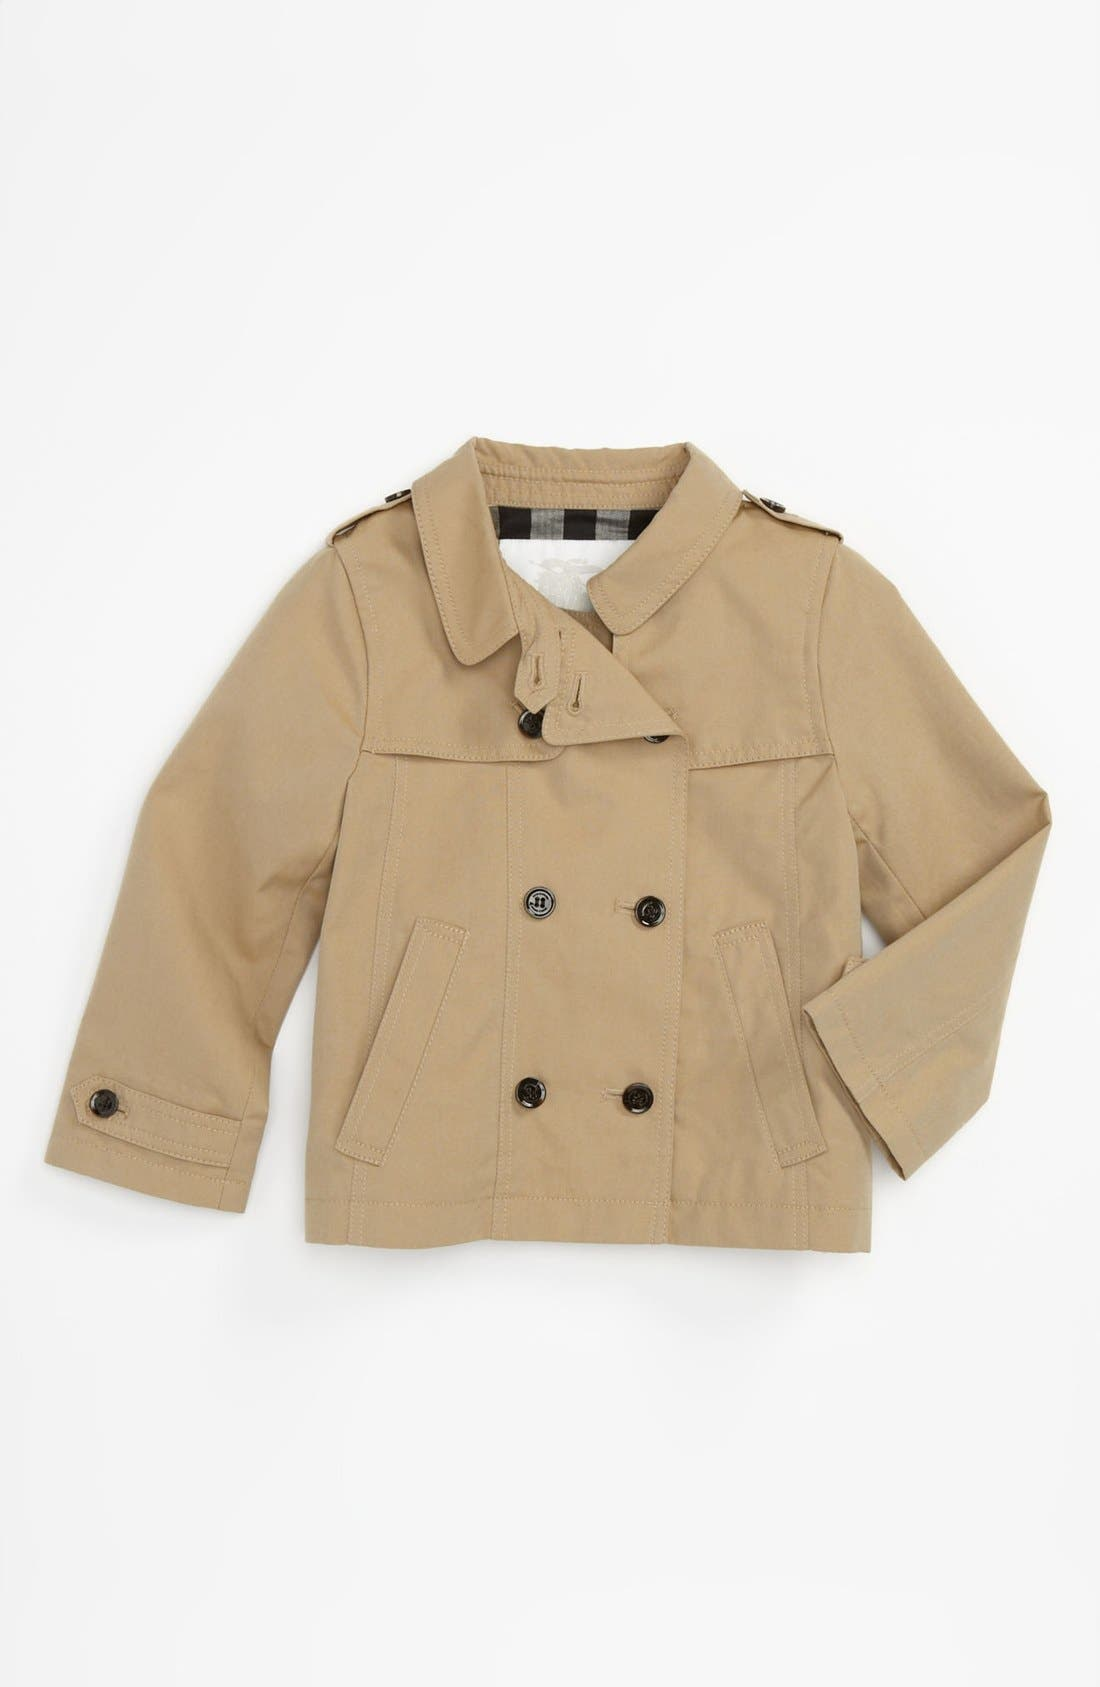 Alternate Image 1 Selected - Burberry Double Breasted Trench Coat (Toddler)